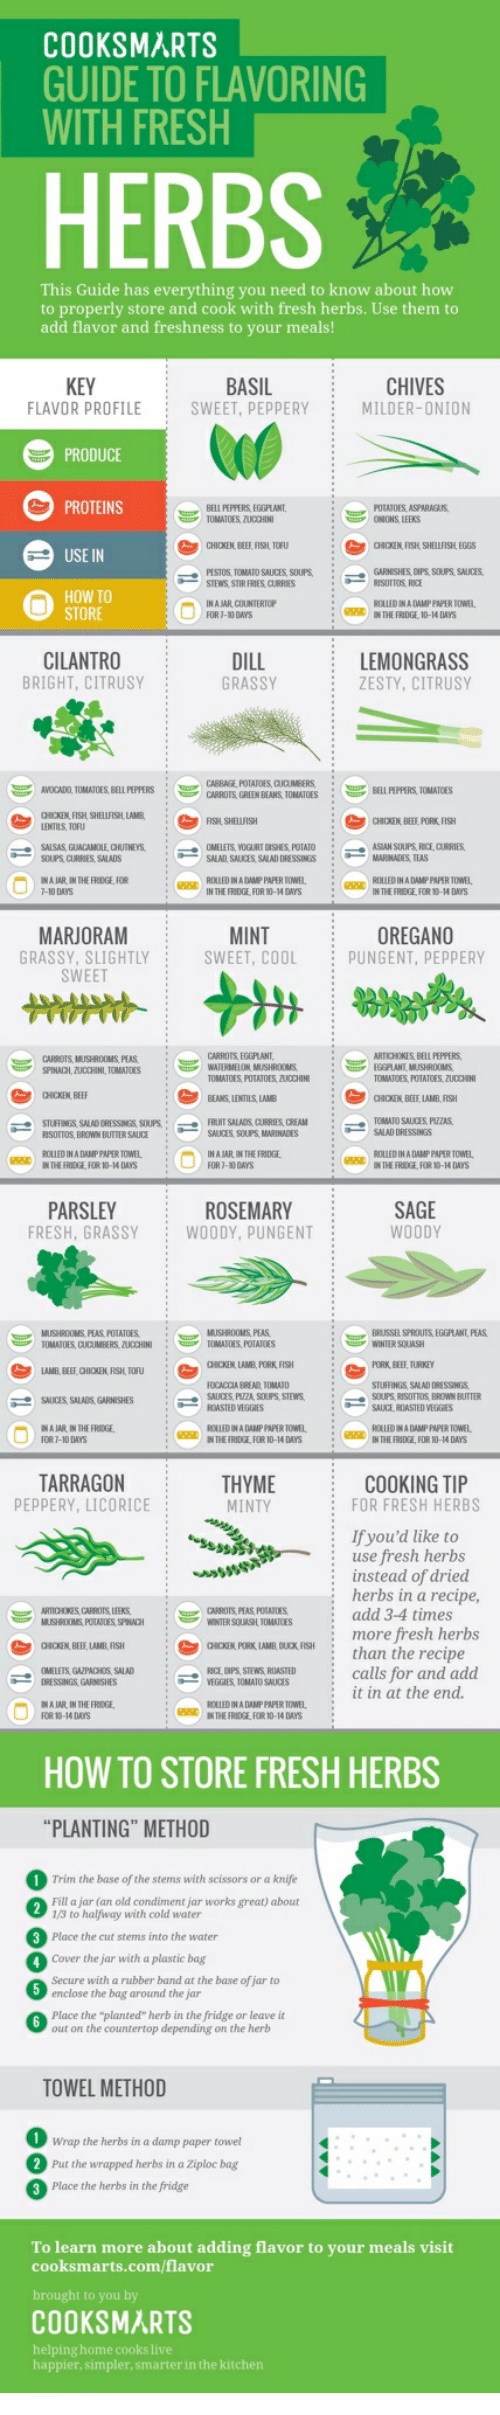 Beef, Fresh, and Guacamole: COOKSMARTS  GUIDE TO FLAVORING  WITH FRESH  HERBS  This Guide has everything you need to know about how  to properly store and cook with fresh herbs. Use them to  add flavor and freshness to your meals!  BASIL  SWEET, PEPPERY  CHIVES  MILDER-ONION  FLAVOR PROFILE  PRODUCE  PROTEINS  BELL PEPPERS, EGGPLANT,  TOMATOES ZUCCHINI  S ASPARAGUS,  CHICKEN FISHI SHELFISHL EGS  GARIESHES, DIPS, SOLPS SAUCES.  → PESOS. TOMATO SAUCES,SOUPS.  STEWS STIR FRIES CURRIES  :  -e  STORE  ROLLED INA DAMP PAPER TOWEL  IN THE FRIDGE, 10-14 DAYS  FOR 7-10 DAYS  CILANTRO  BRIGHT, CITRUSY  DILL  GRASSY  LEMONGRASS  ZESTY, CITRUSY  AVOCADO, TOMATOES. BELL PEPPERS  BELL PEPPERS TOMATOES  CARROTS, GREEN BEANS, TOMATOES  CHICKEN, FISH SHELILFISHL LAMB  CHIKEN, B旺PORK. FISH  LENTILS TOFU  SALSAS, GUACAMOLE, UTNEYS.  SOUPS CURRIES SALADS  →  ROLLED IN A DAMP PAPER TOWEL  IN THE FRDGE FOR 10-4 DAYS  ROLUED IN A DAMP PAPER TOWEL  IN THE FRIDGE FOR 10-14 DAYS  MARJORAM  GRASSY, SLIGHTLY  SWEET  MINT  SWEET, COOLPUNGENT, PEPPERY  OREGANO  WATERMELON MUSHROOMS  TOMATOES, POTATOES, DUCCHINI  BEANS,LENTILS LAMB  SPINACH ZUCCHINL TOMATOES  TOMATOES, POTATOES, ZUCCHNI  RSOTTOS, BROWN BUTTER SAUCE  SAUCES, SOUPS, MARINADES  SALAD DRESSINGS  ROLLED IN A DAMP FAPER TOWEL  NTHE FRIDGE FOR 10-14DAYS  ROLLED IN A DAMP PAPER TOWEL  區  PARSLEY  FRESH, GRASSY  ROSEMARY  WOODY, PUNGENT  MUSHROOMS PEAS, POTATOES  TOMATOES, CUCUMBERS ZUCCHINITOMATOES, POTATOES  ︶ ERIISSEL SPROUTS, EGGPLANT,PEAS  ORRN, LAMB, PORK FISH  LAMB,BEEF, CHI XEN, FISH, TOFU  :  シ  :  OCACCIA EREAD TOMATO  SAUICES SALADS,GARNISHES  SOUPS RISOTTIOS, BRDWN BUTTER  SAI RNSTED VEGGES  涠ALAR IN THE FROGE.  FOR 7-10 DAYS  ROLLED IN A DAMP PAPER TOWEL  IN THE FRIDGE, FOR 10-14 DAYS  ROLLED IN A DAMP PAPER TOWEL  IN THE FRIDGE, FOR 10-14 DAYS  TARRAGON  PEPPERY, LICORICE  THYME COOKING TIP  MINTY  :FOR FRESH HERBS  Ifyou'd like to  instead of dried  ARTICHONES CARROTS, LEEKS  WNTER SOUASH TOMATOES  aacREM PORKUMB. Dux.RSH  